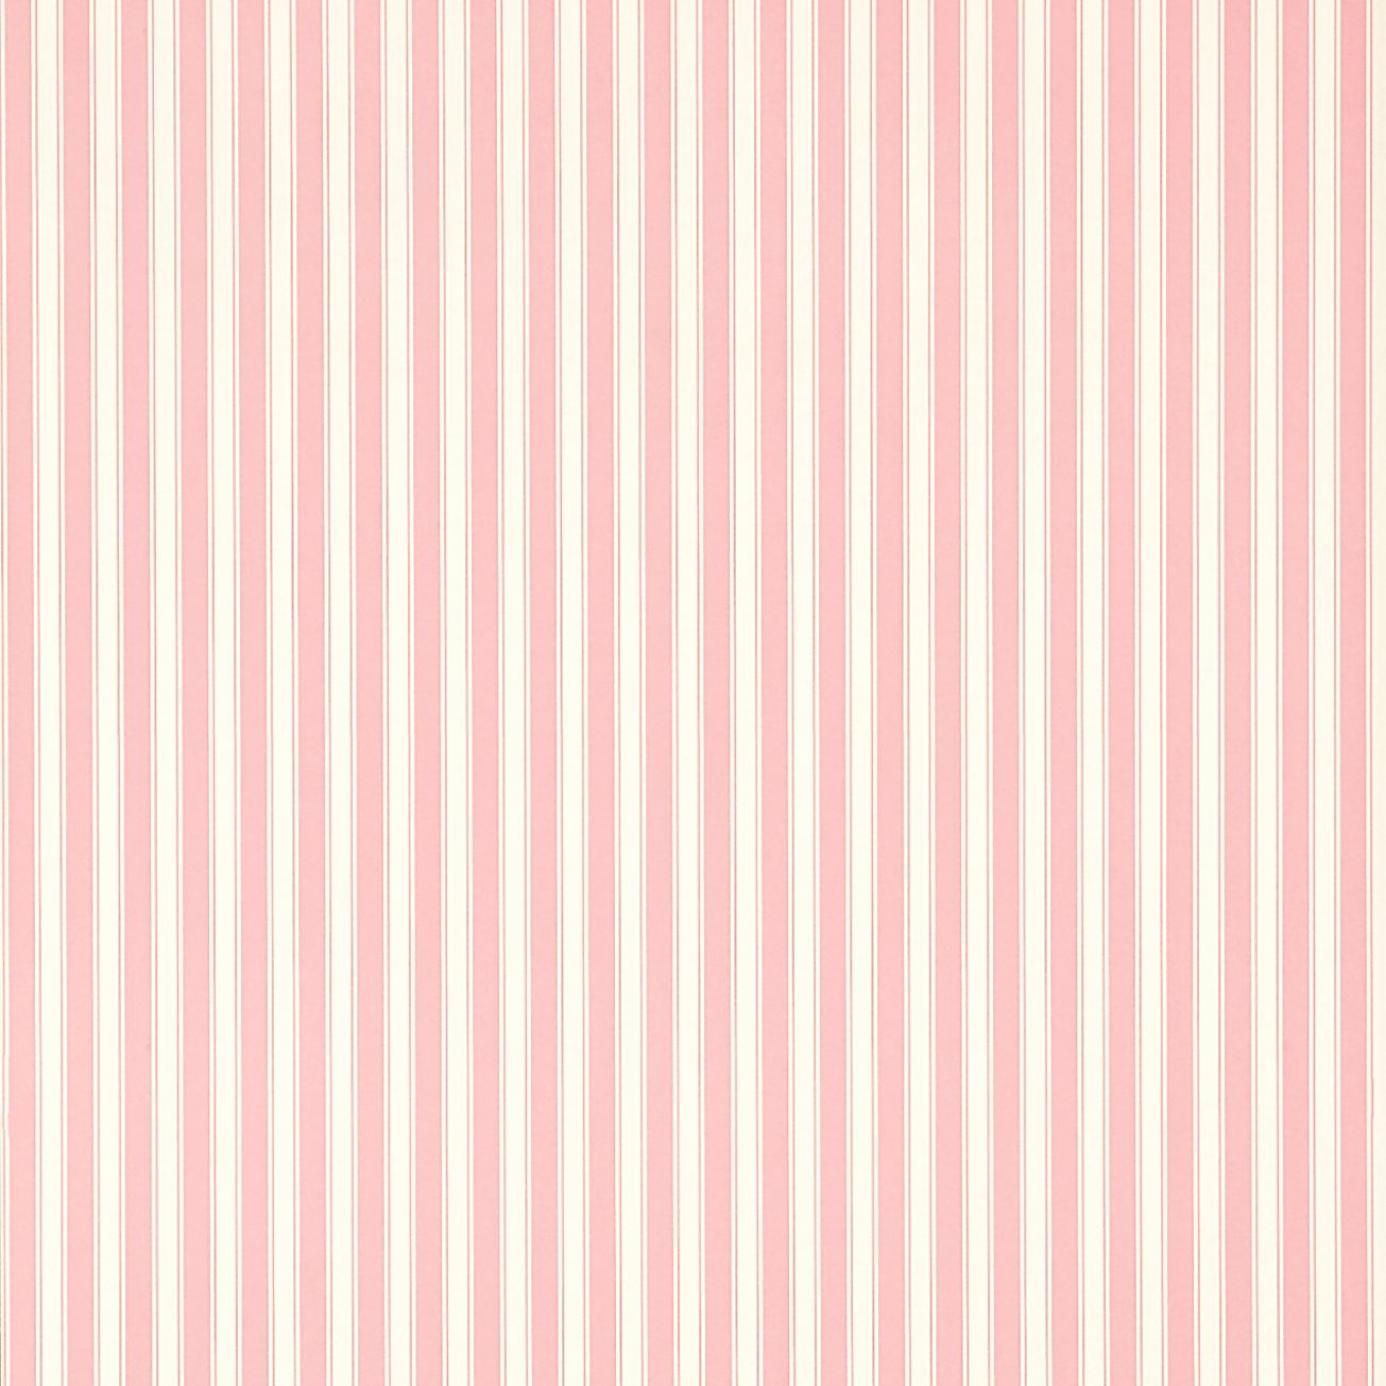 Sanderson Caverley Wallpapers New Tiger Stripe Wallpaper - Rose/Ivory ...